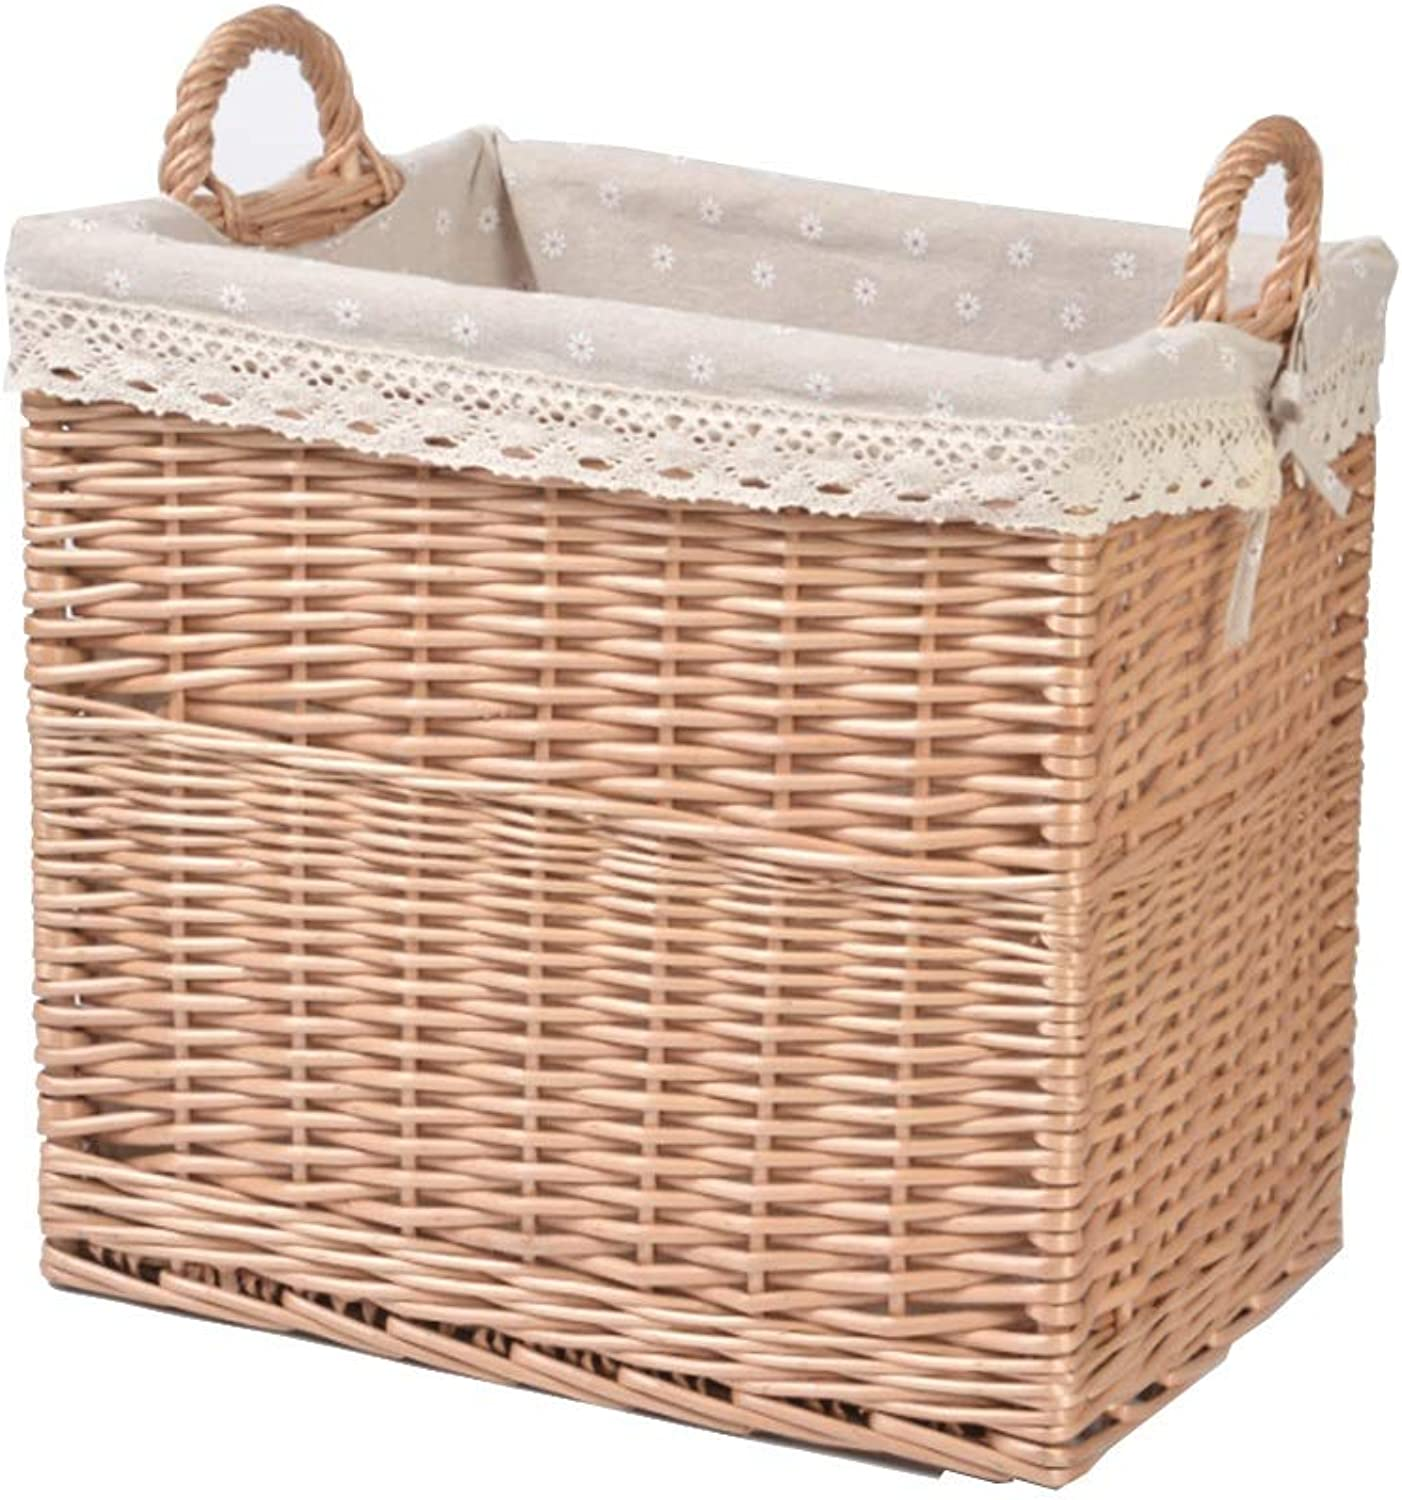 ZHANGQIANG Storage Basket Laundry Basket Woven Large Storage Basket Toy Storage Box Hamper (color   Wood color+Snow Lining, Size   35  45  40cm)